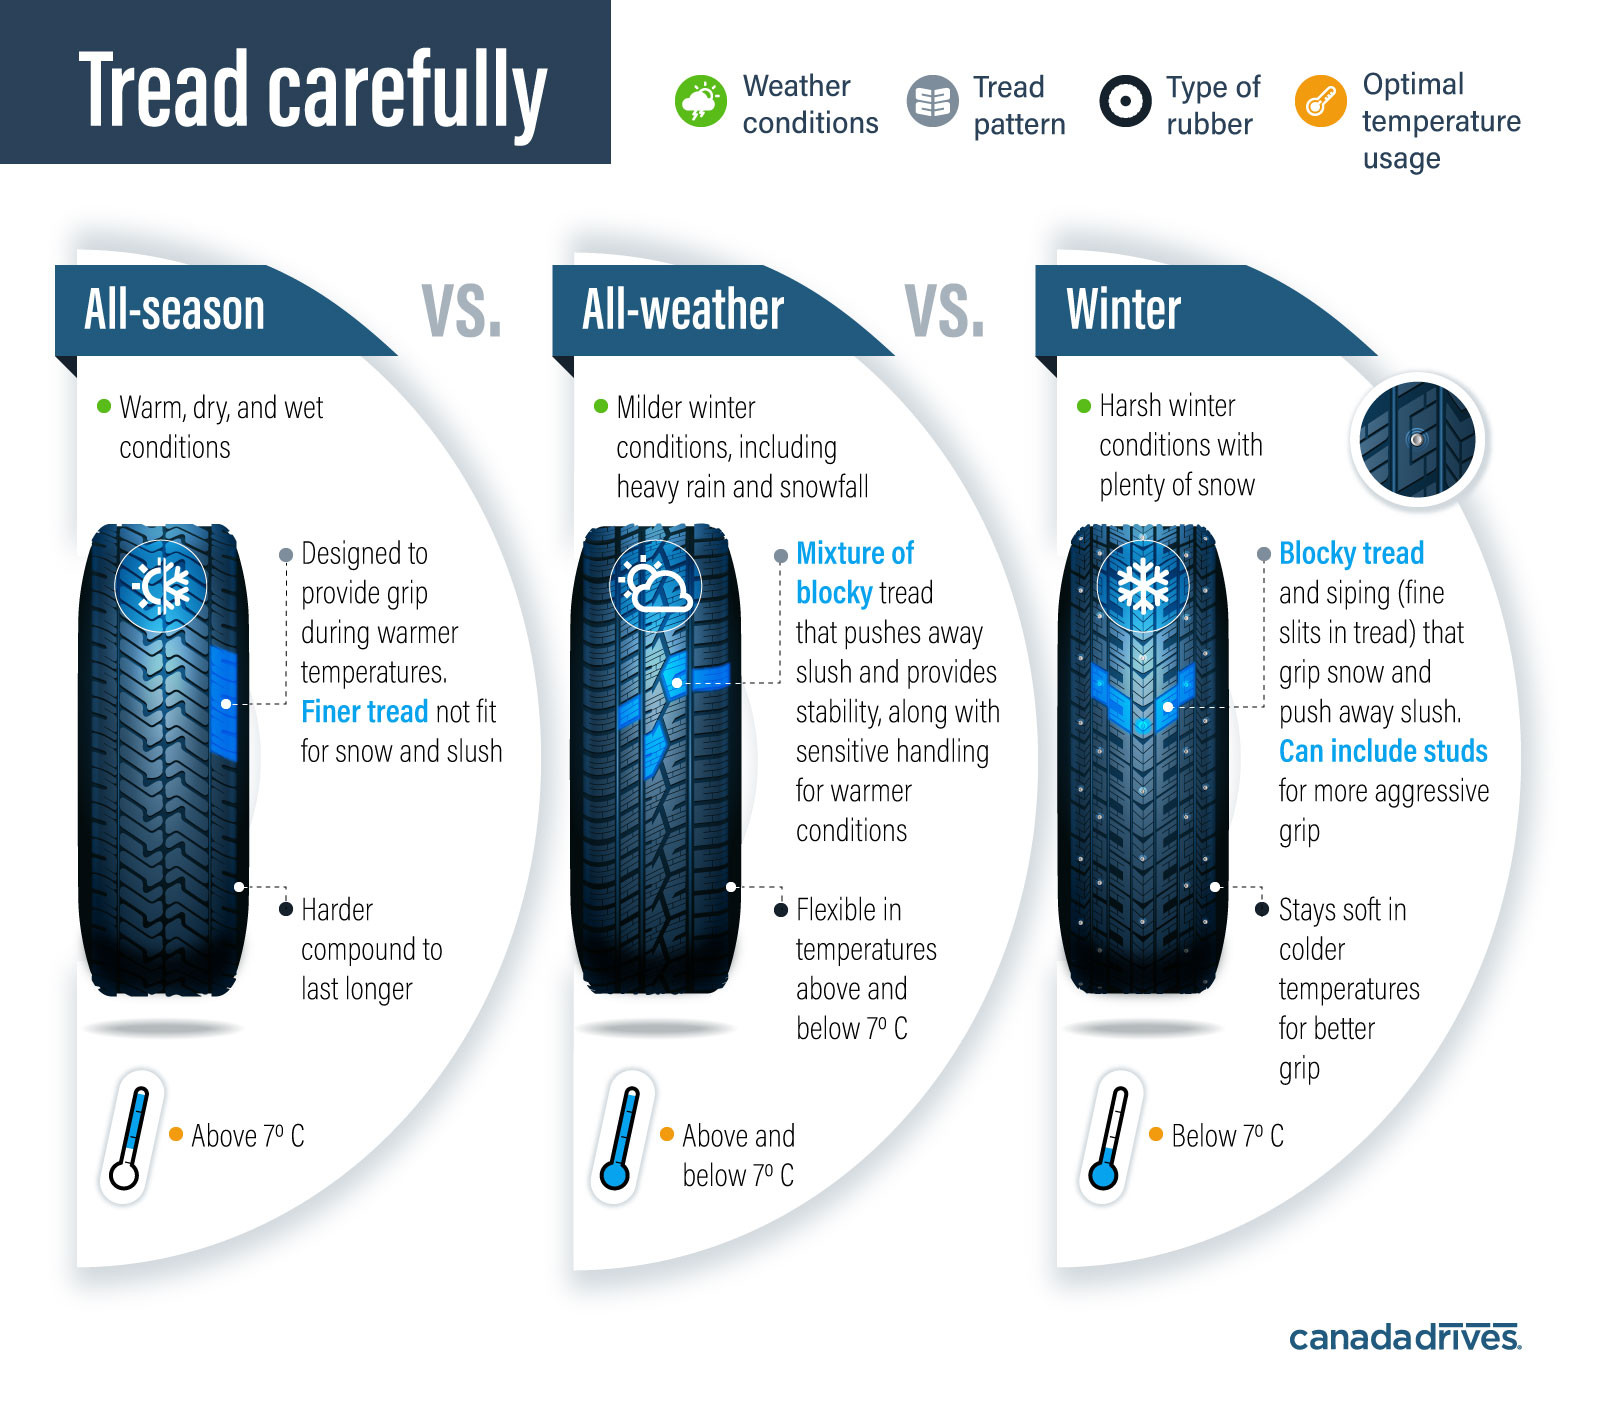 comparing the tread design of all-season, all-weather, and winter tires